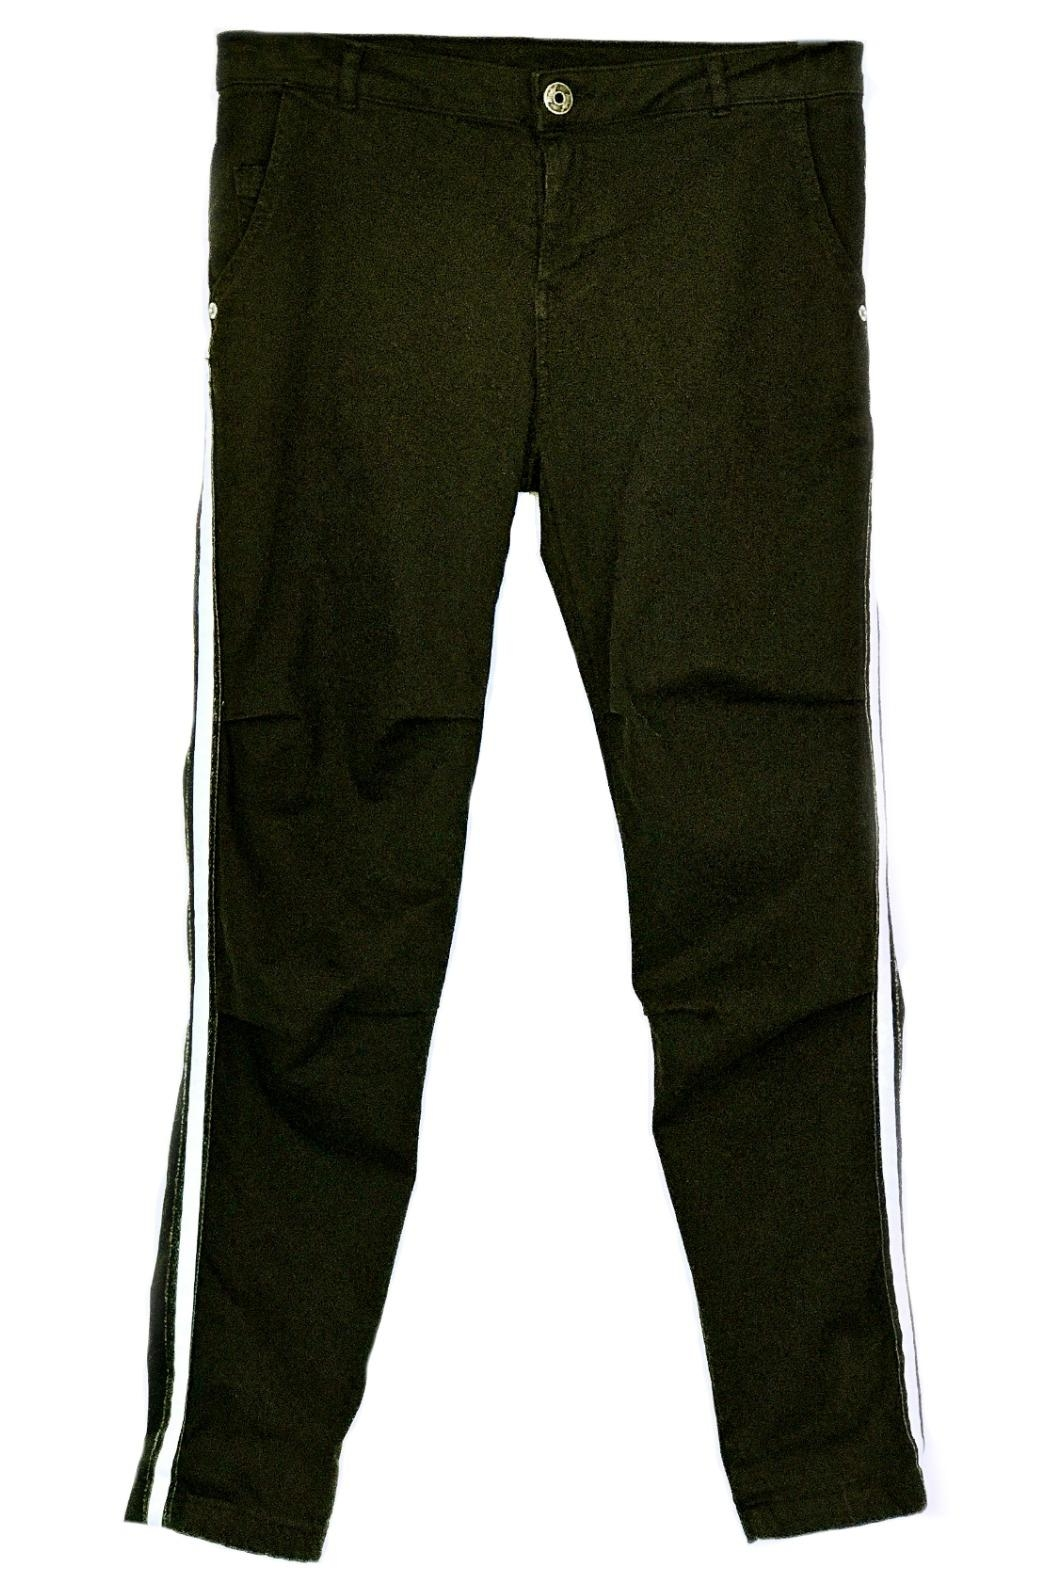 Maryley Black Stretch Pants - Main Image